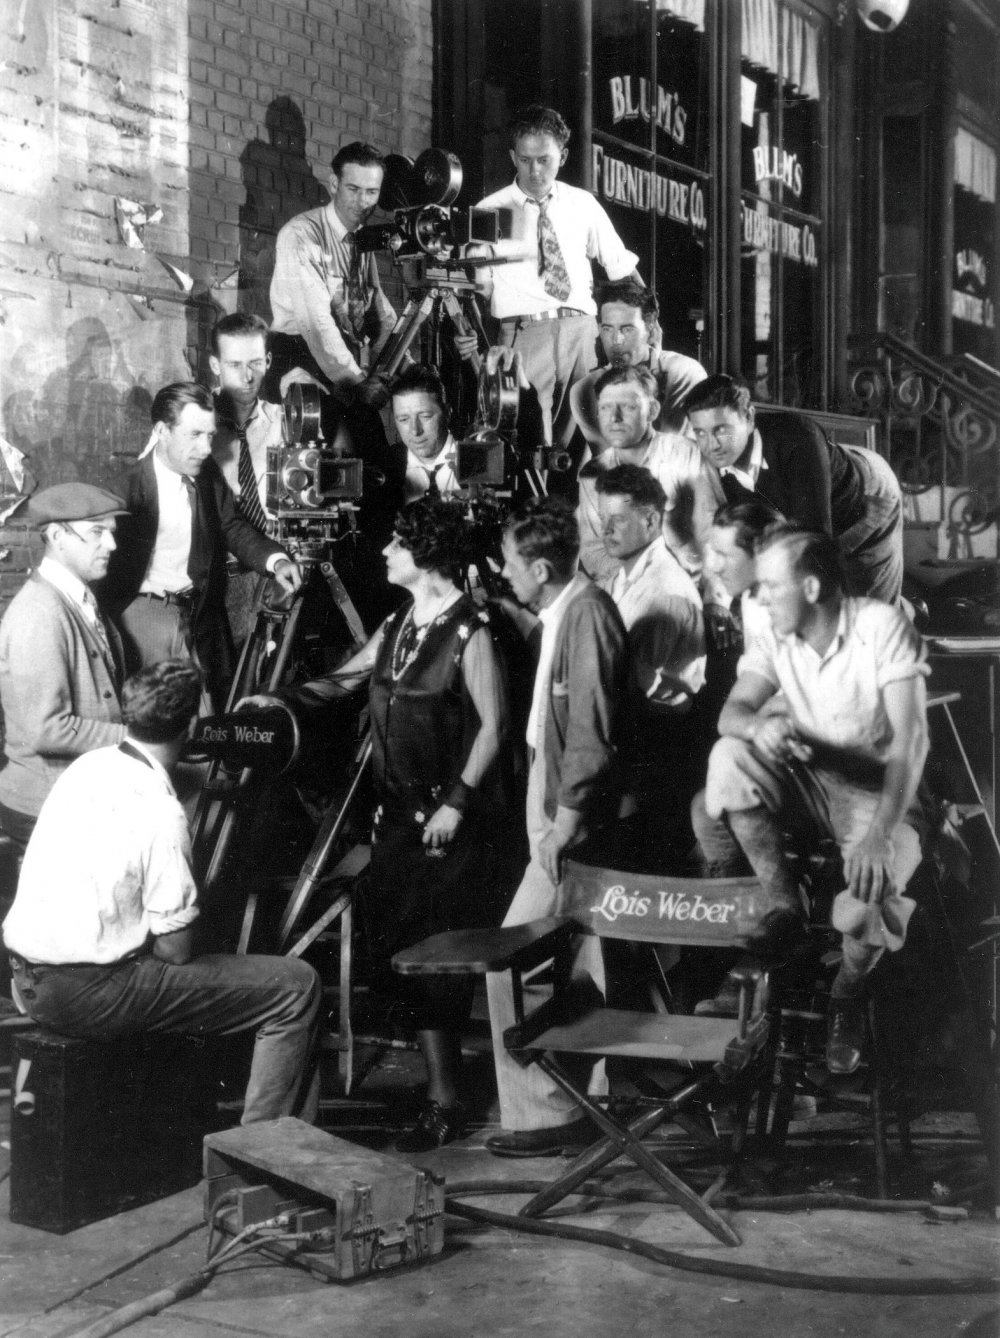 Lois Weber and crew